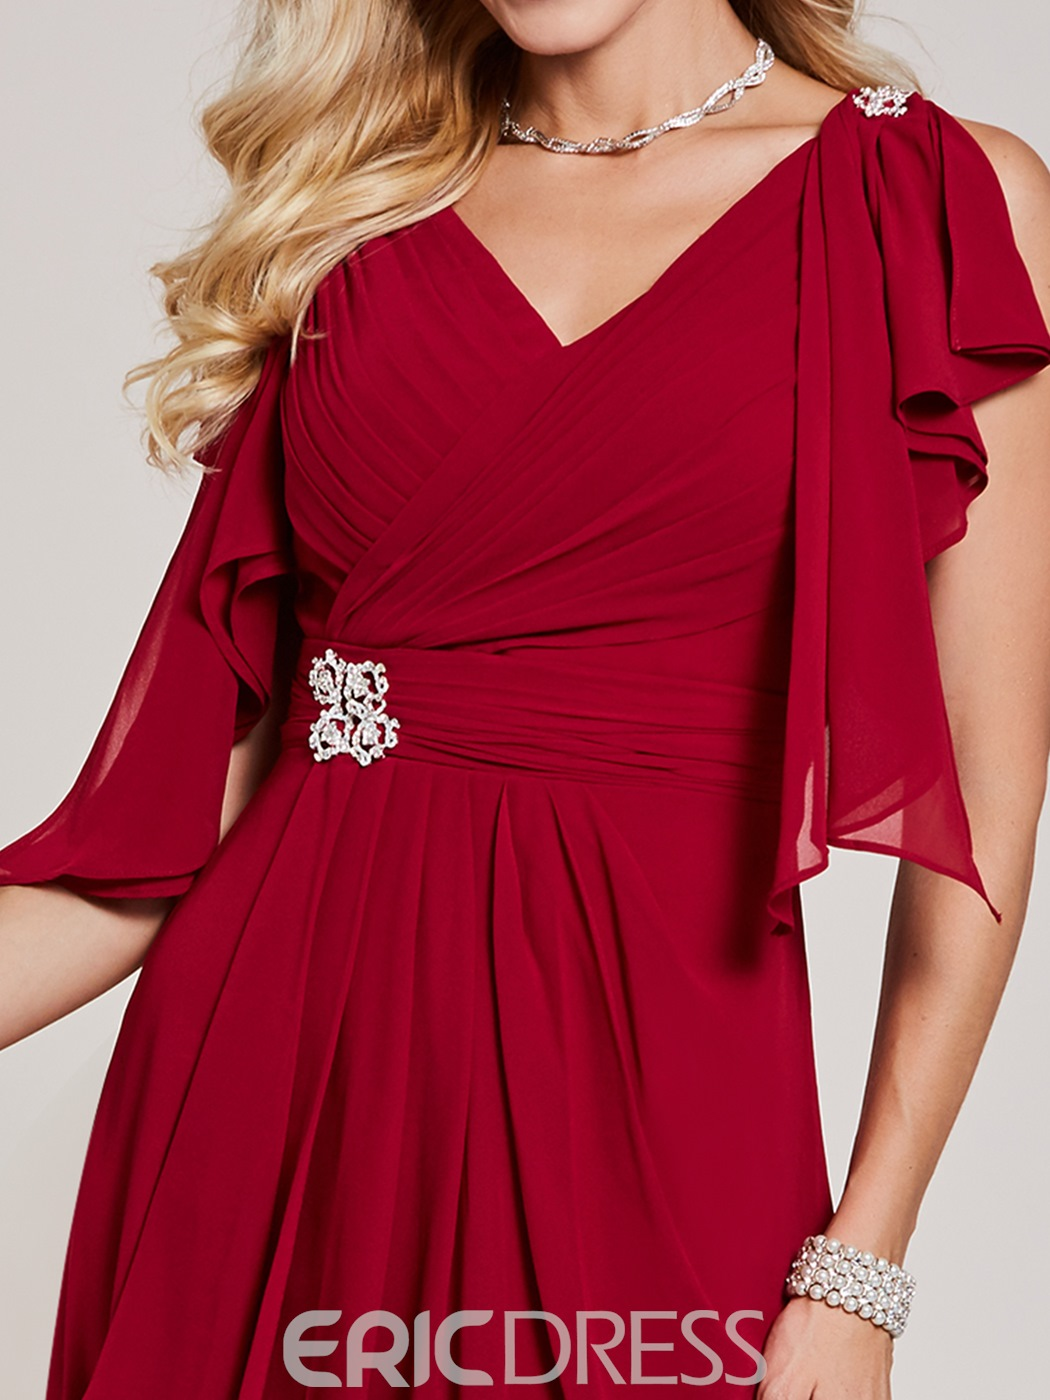 Ericdress Sexy Sheath Beaded One Shoulder Pleats Short Cocktail Party Dress